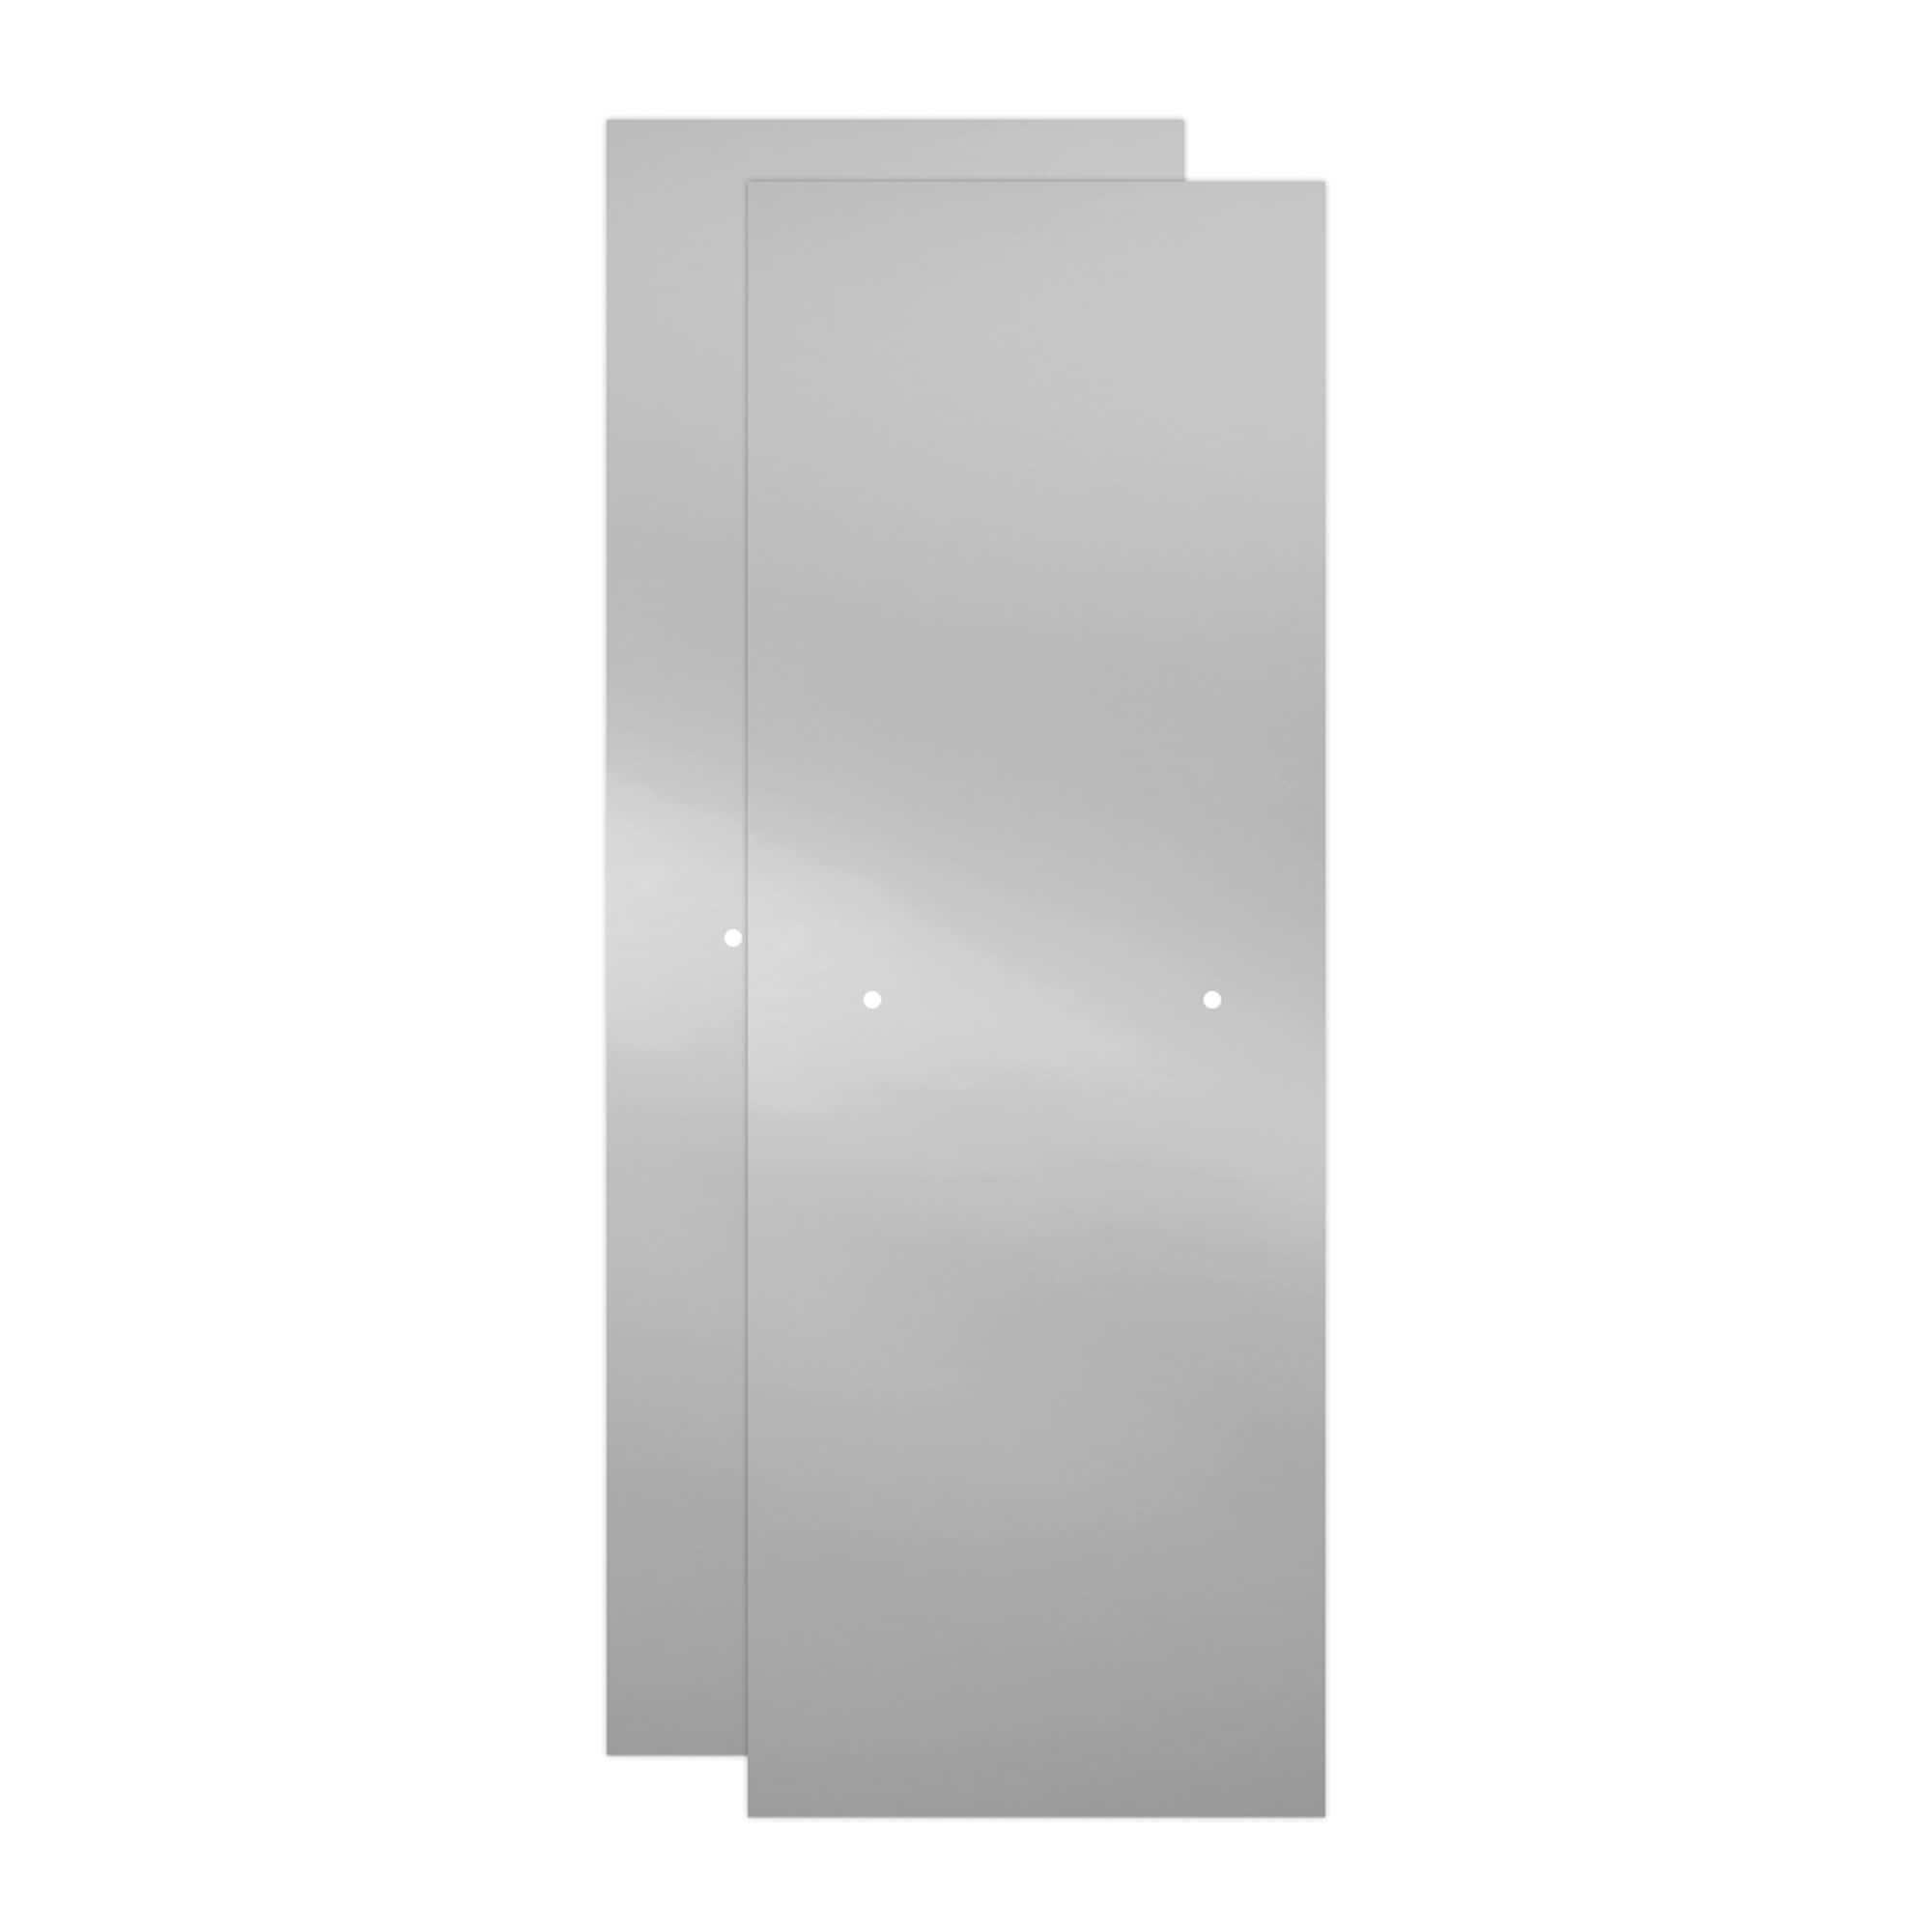 Delta Sd3956978 Classic 70 High X 59 3 8 Wide Sliding Semi Frameless Shower Door With Clear Glass Bronze